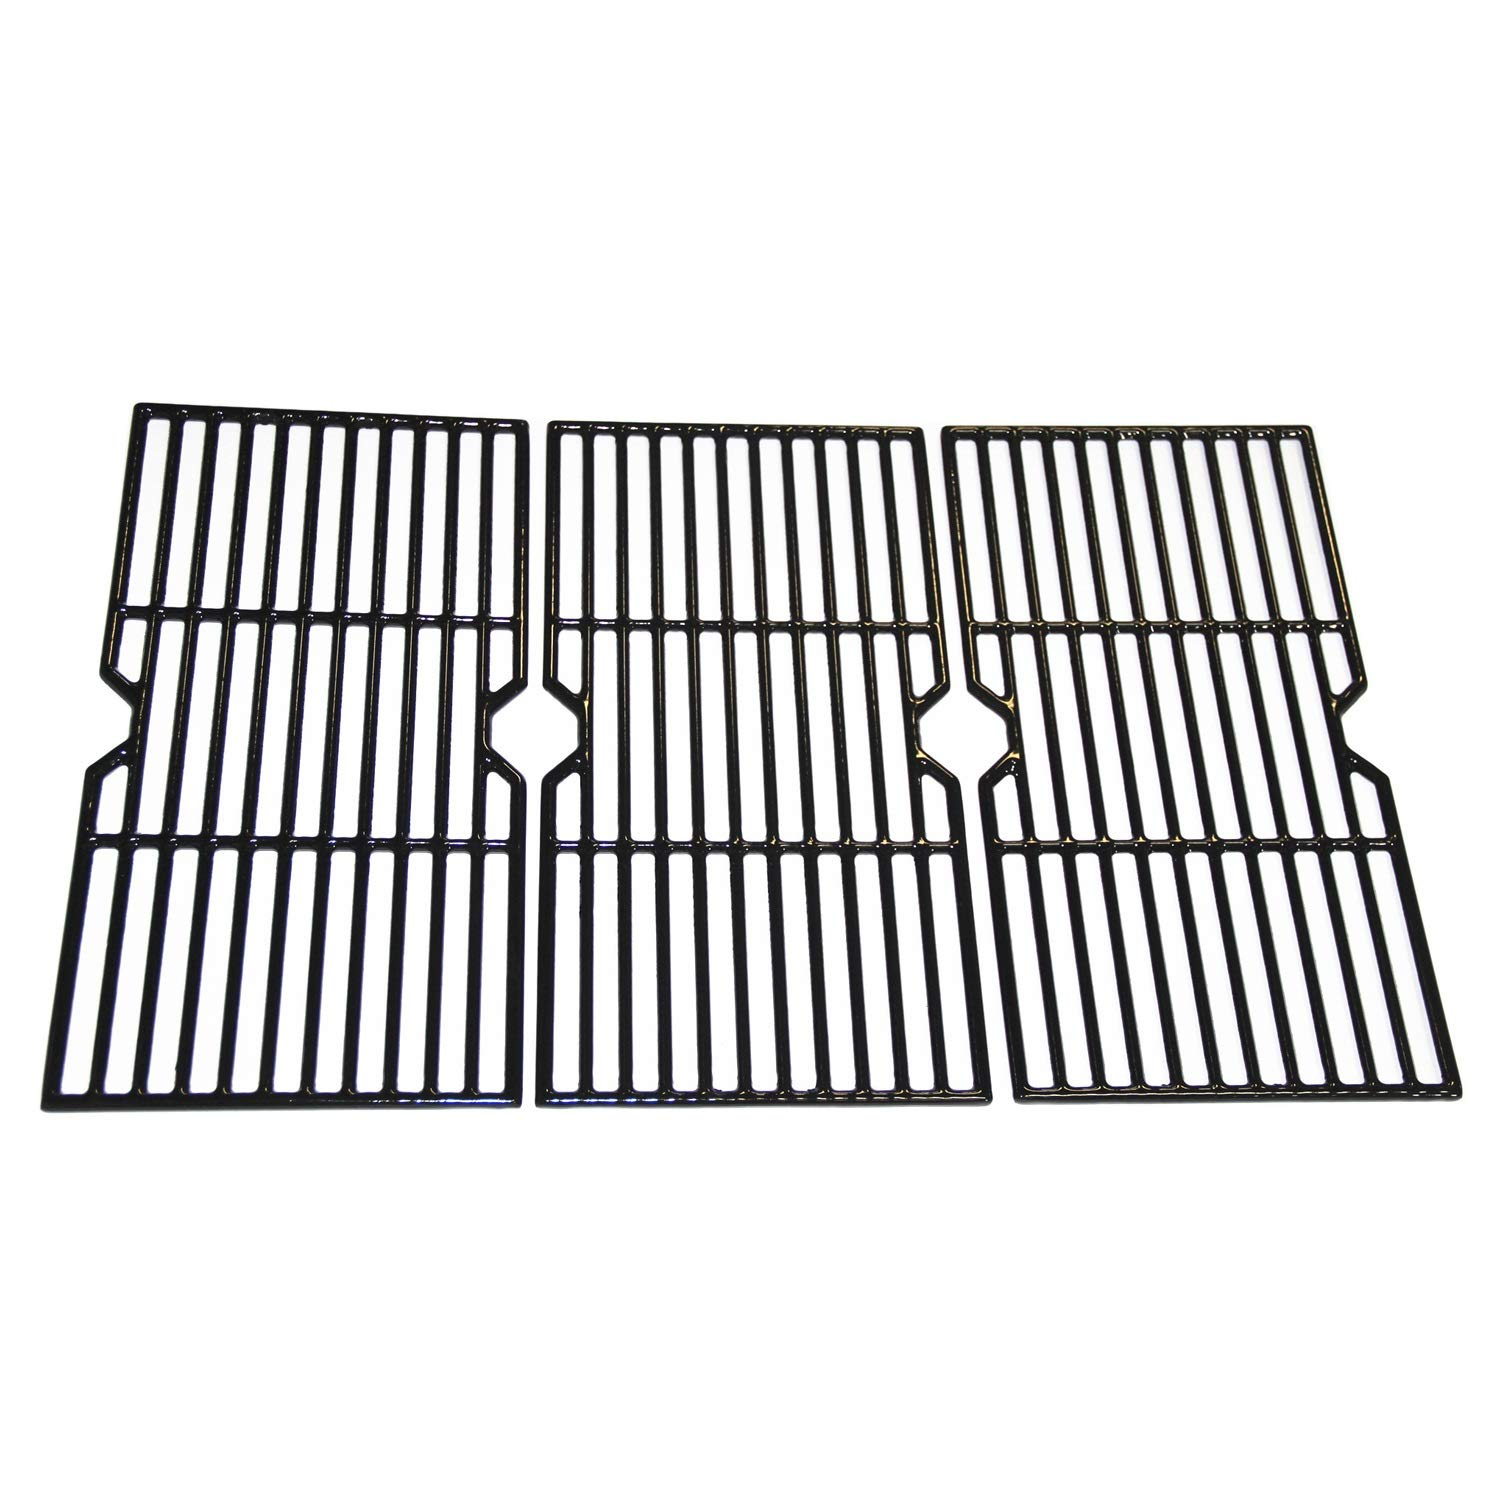 Hongso PCB003 Porcelain Coated Cast Iron Grill Grid Grates Replacement for Charbroil 463344015, 466344015, 466642616, Nexgrill 720-0864 Gas Grill, G467-0002-W1, One 3-pc Cooking Grid Set by Hongso